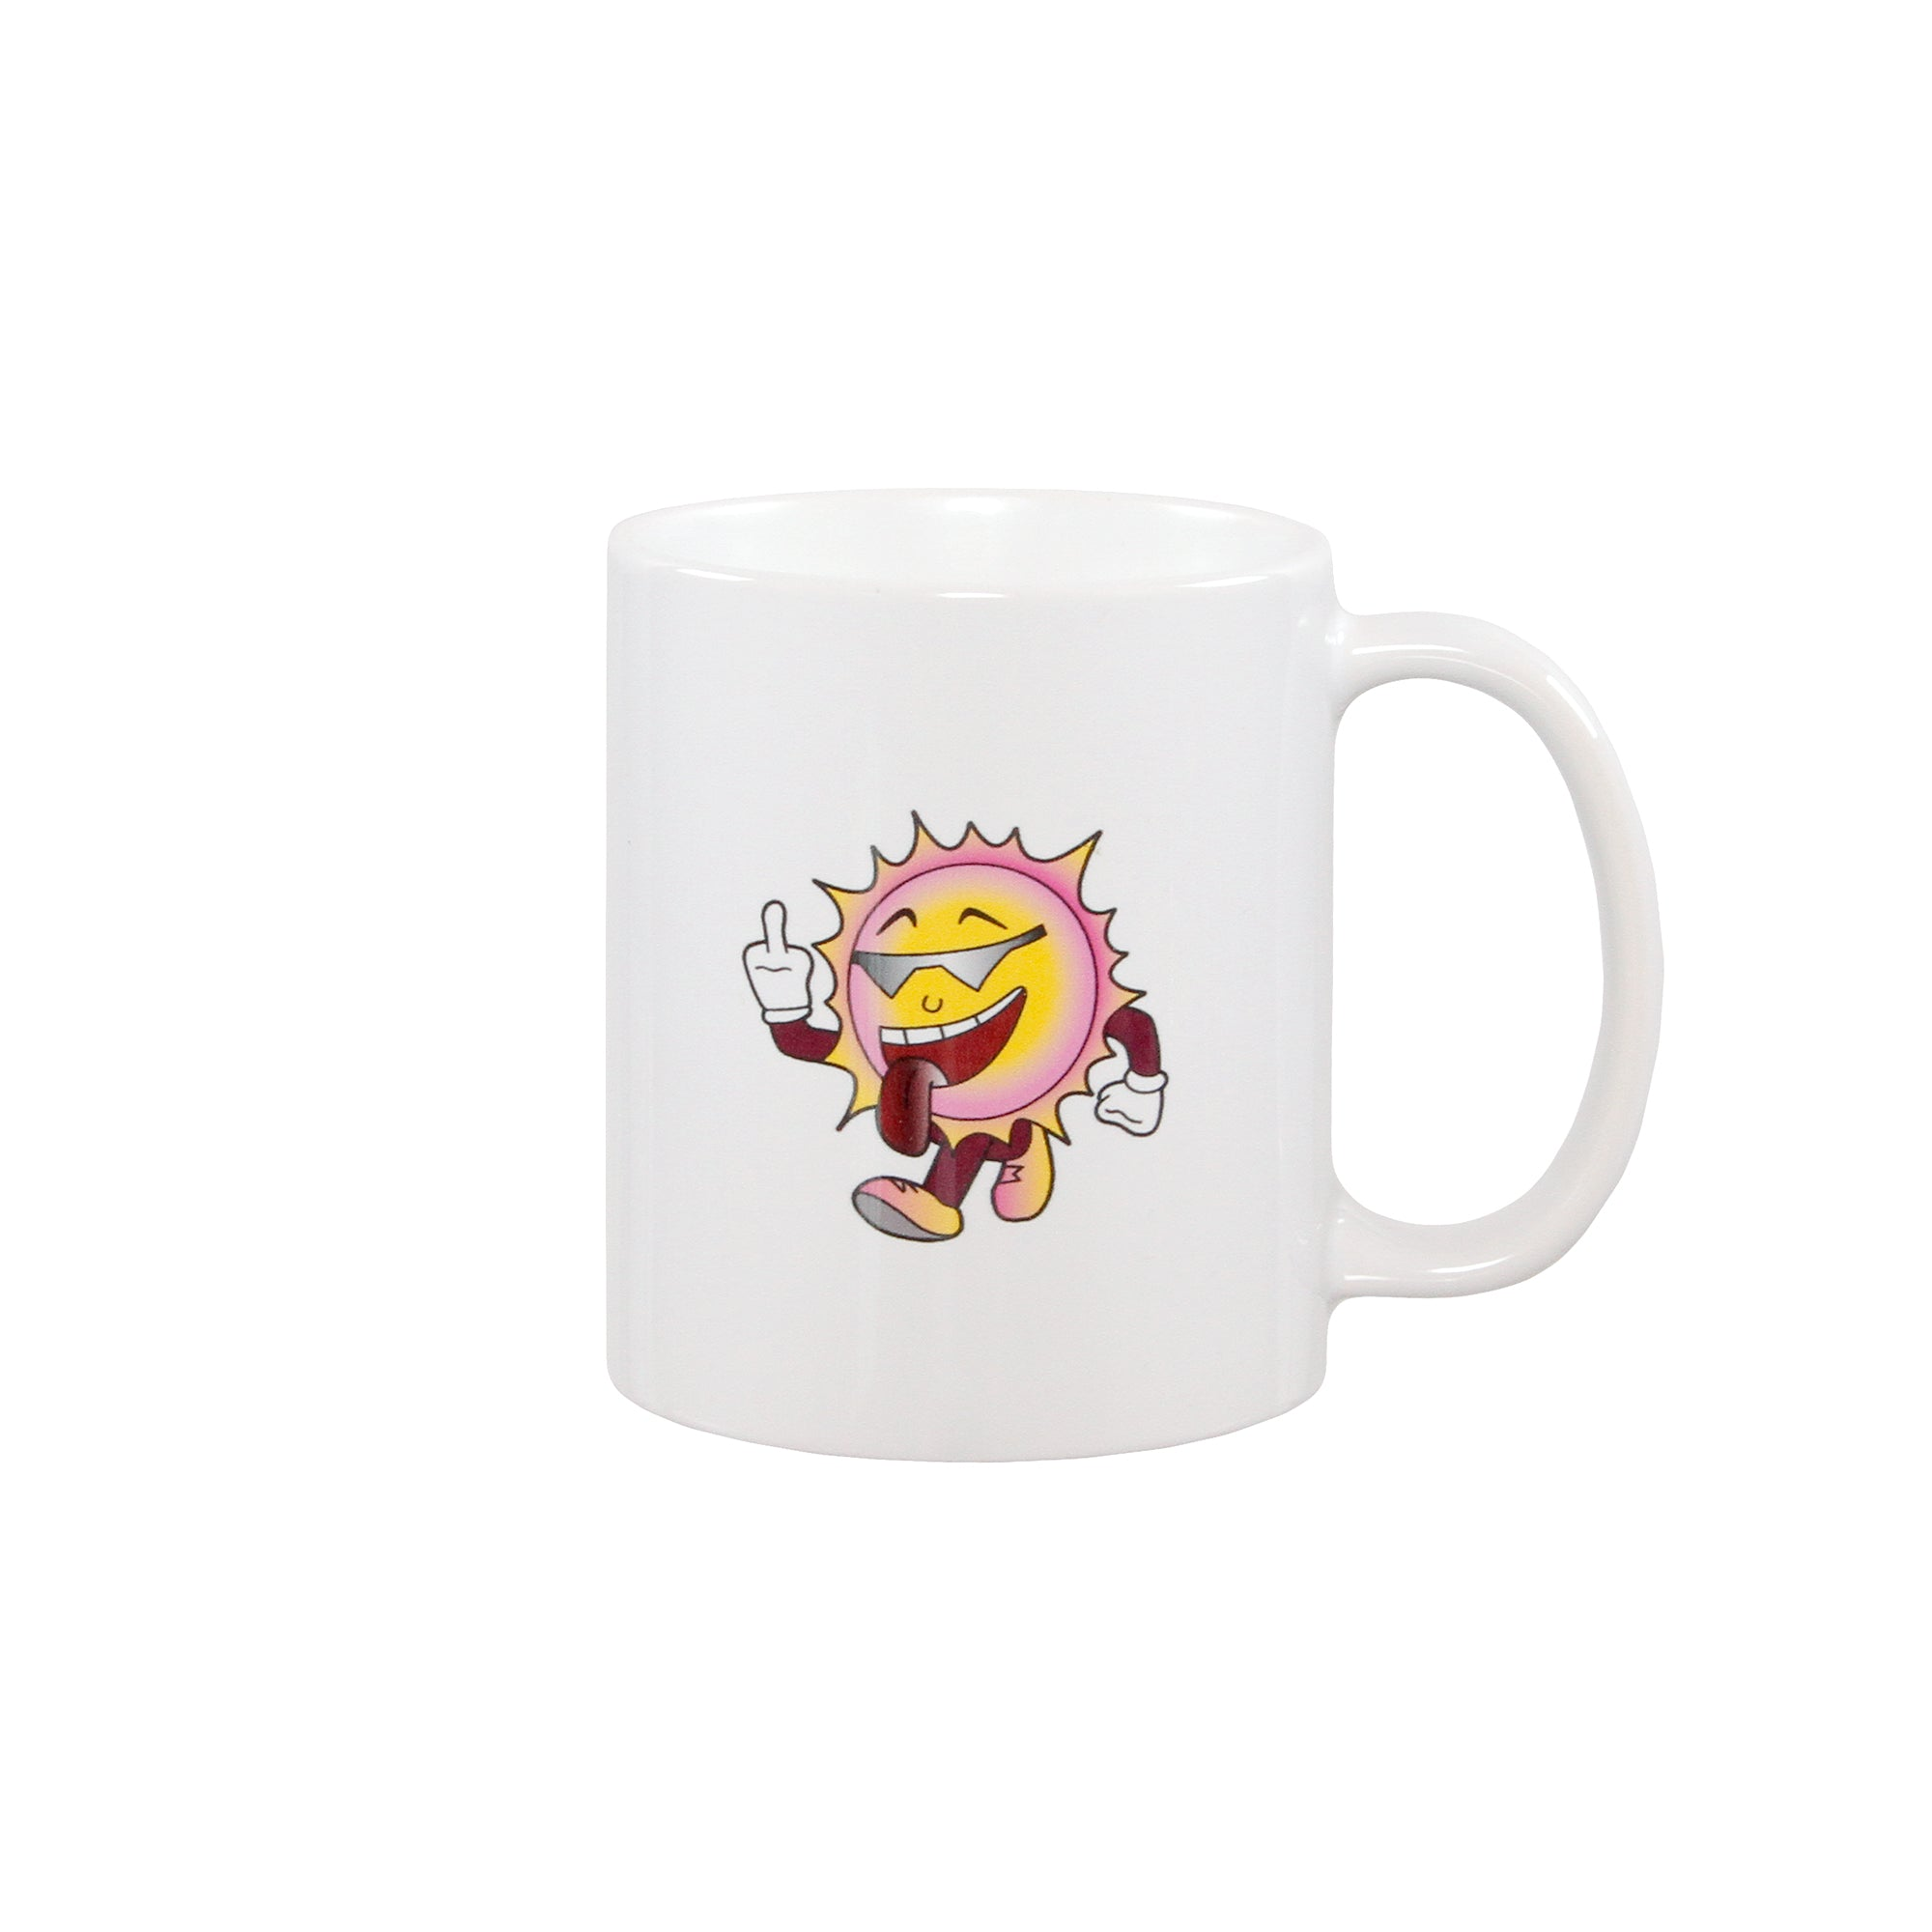 Sunshine Mug - Accessories - Saintwoods